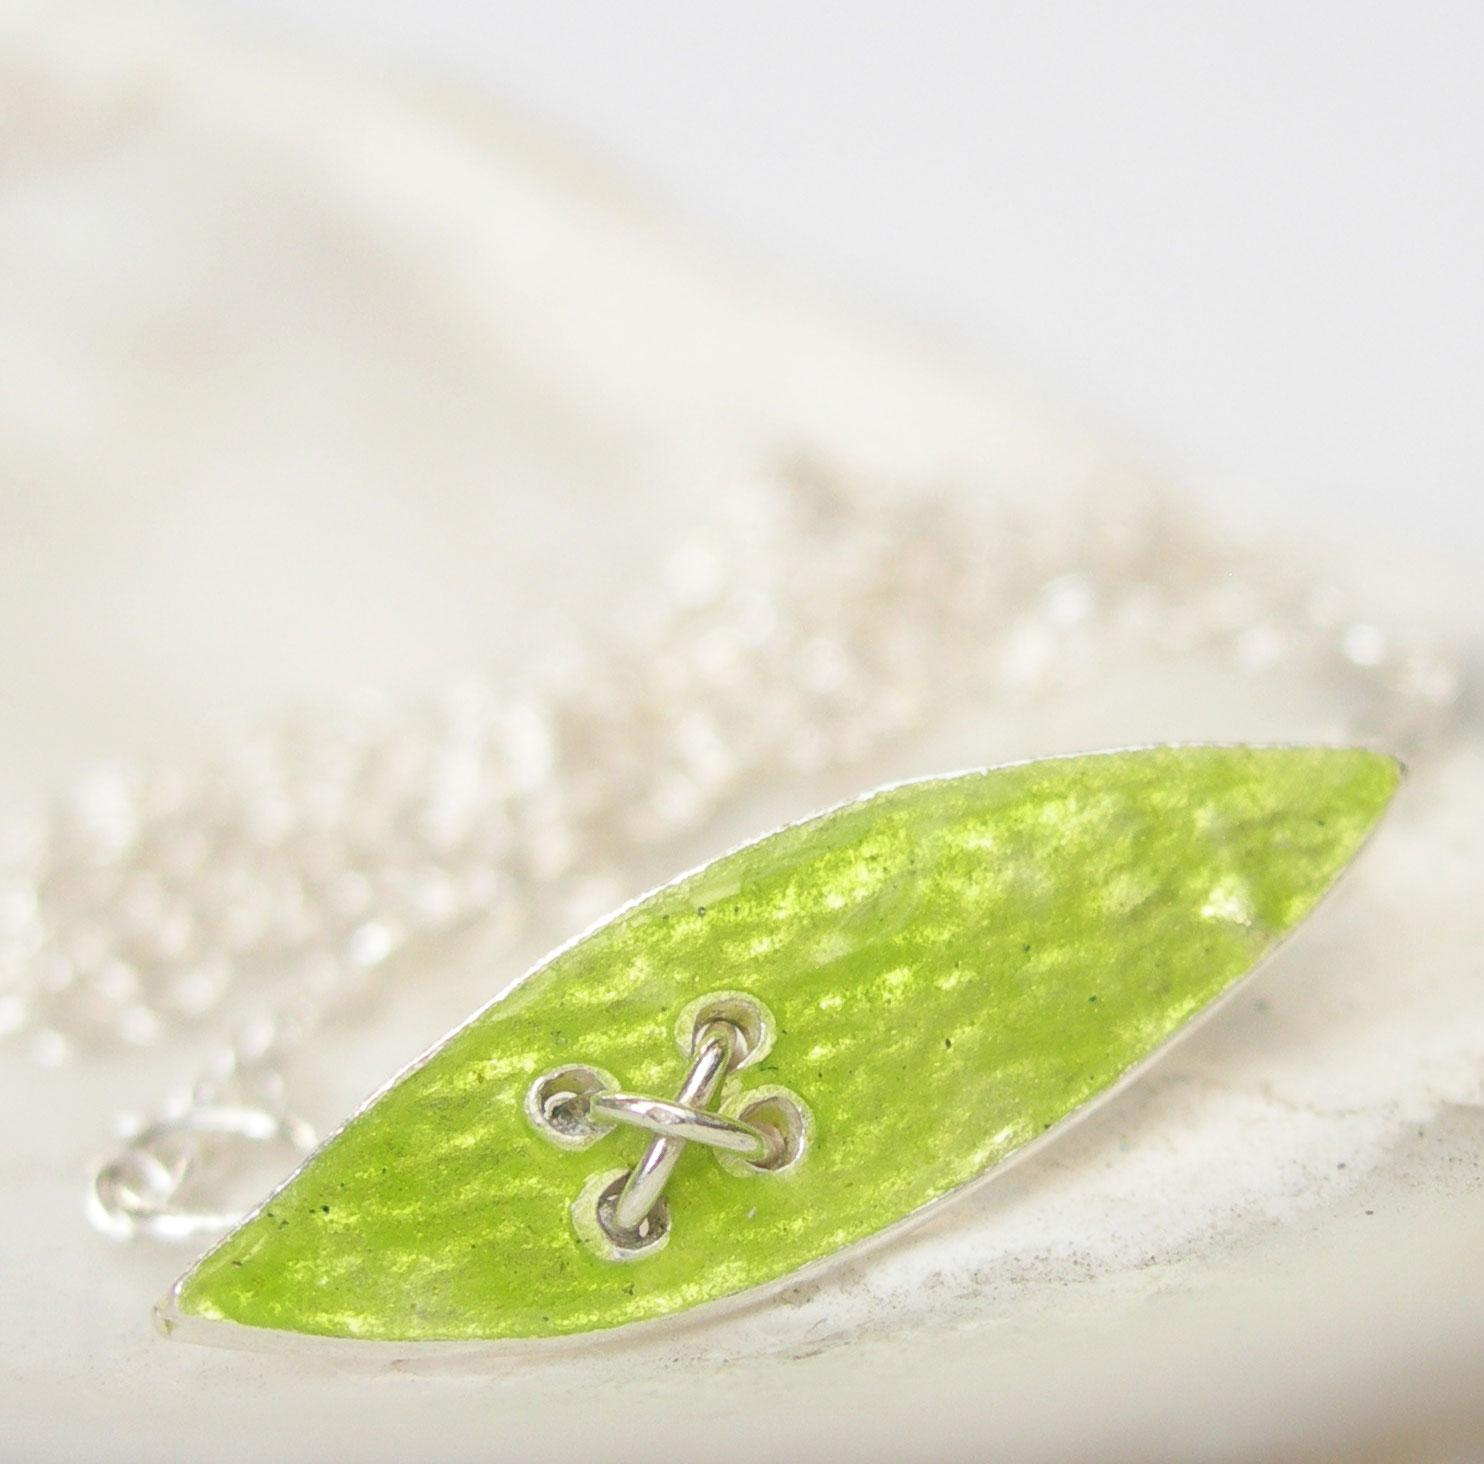 Enamelled Silver Petal Kiss Pendant in Lime Green